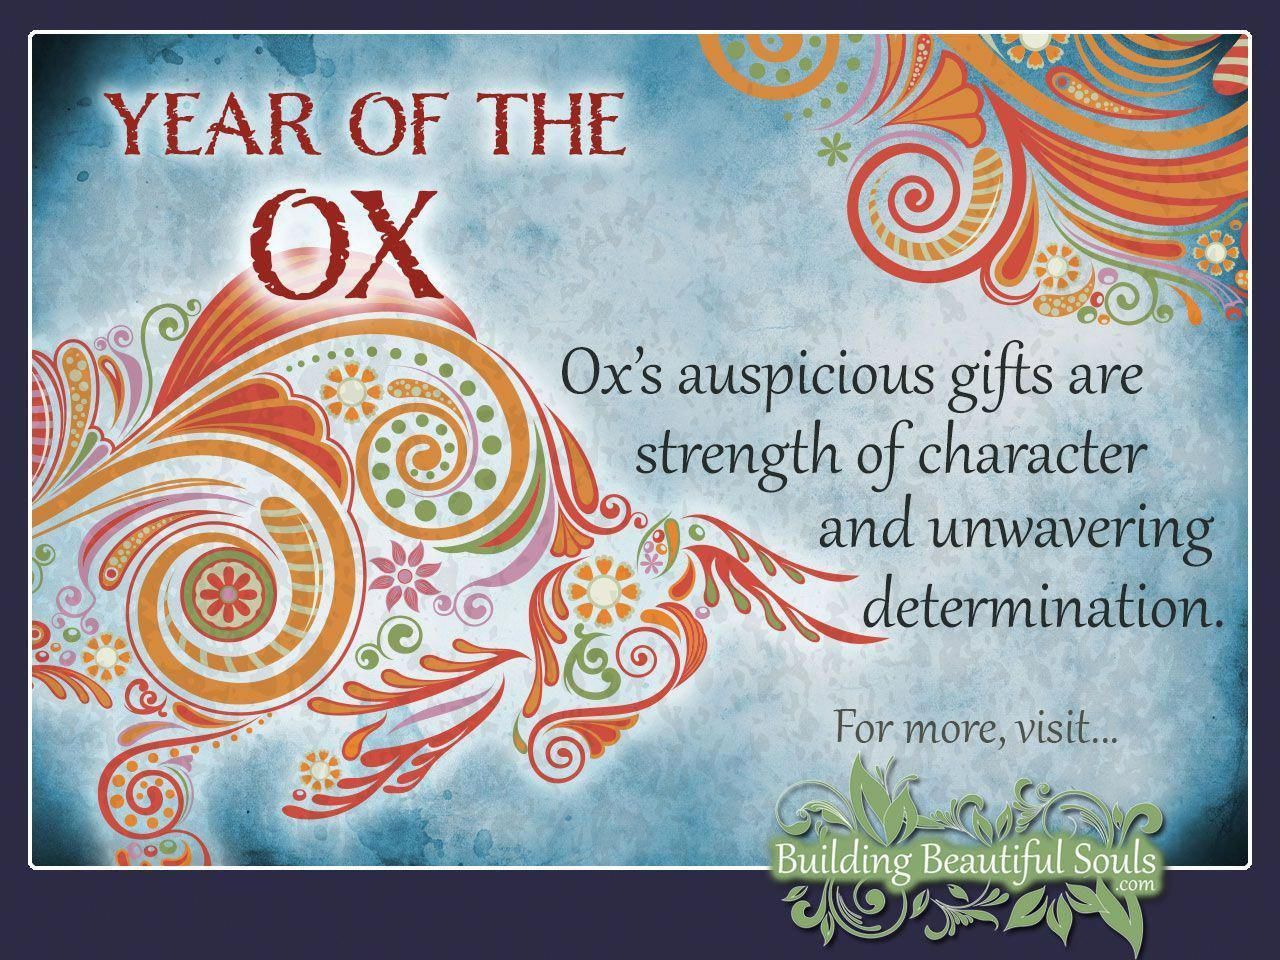 Chinese Zodiac Ox Years Are 1949 1961 1973 1985 1997 2009 2021 2033 Get In Depth Info On The Year Chinese Zodiac Signs Ox Chinese Zodiac Chinese Zodiac